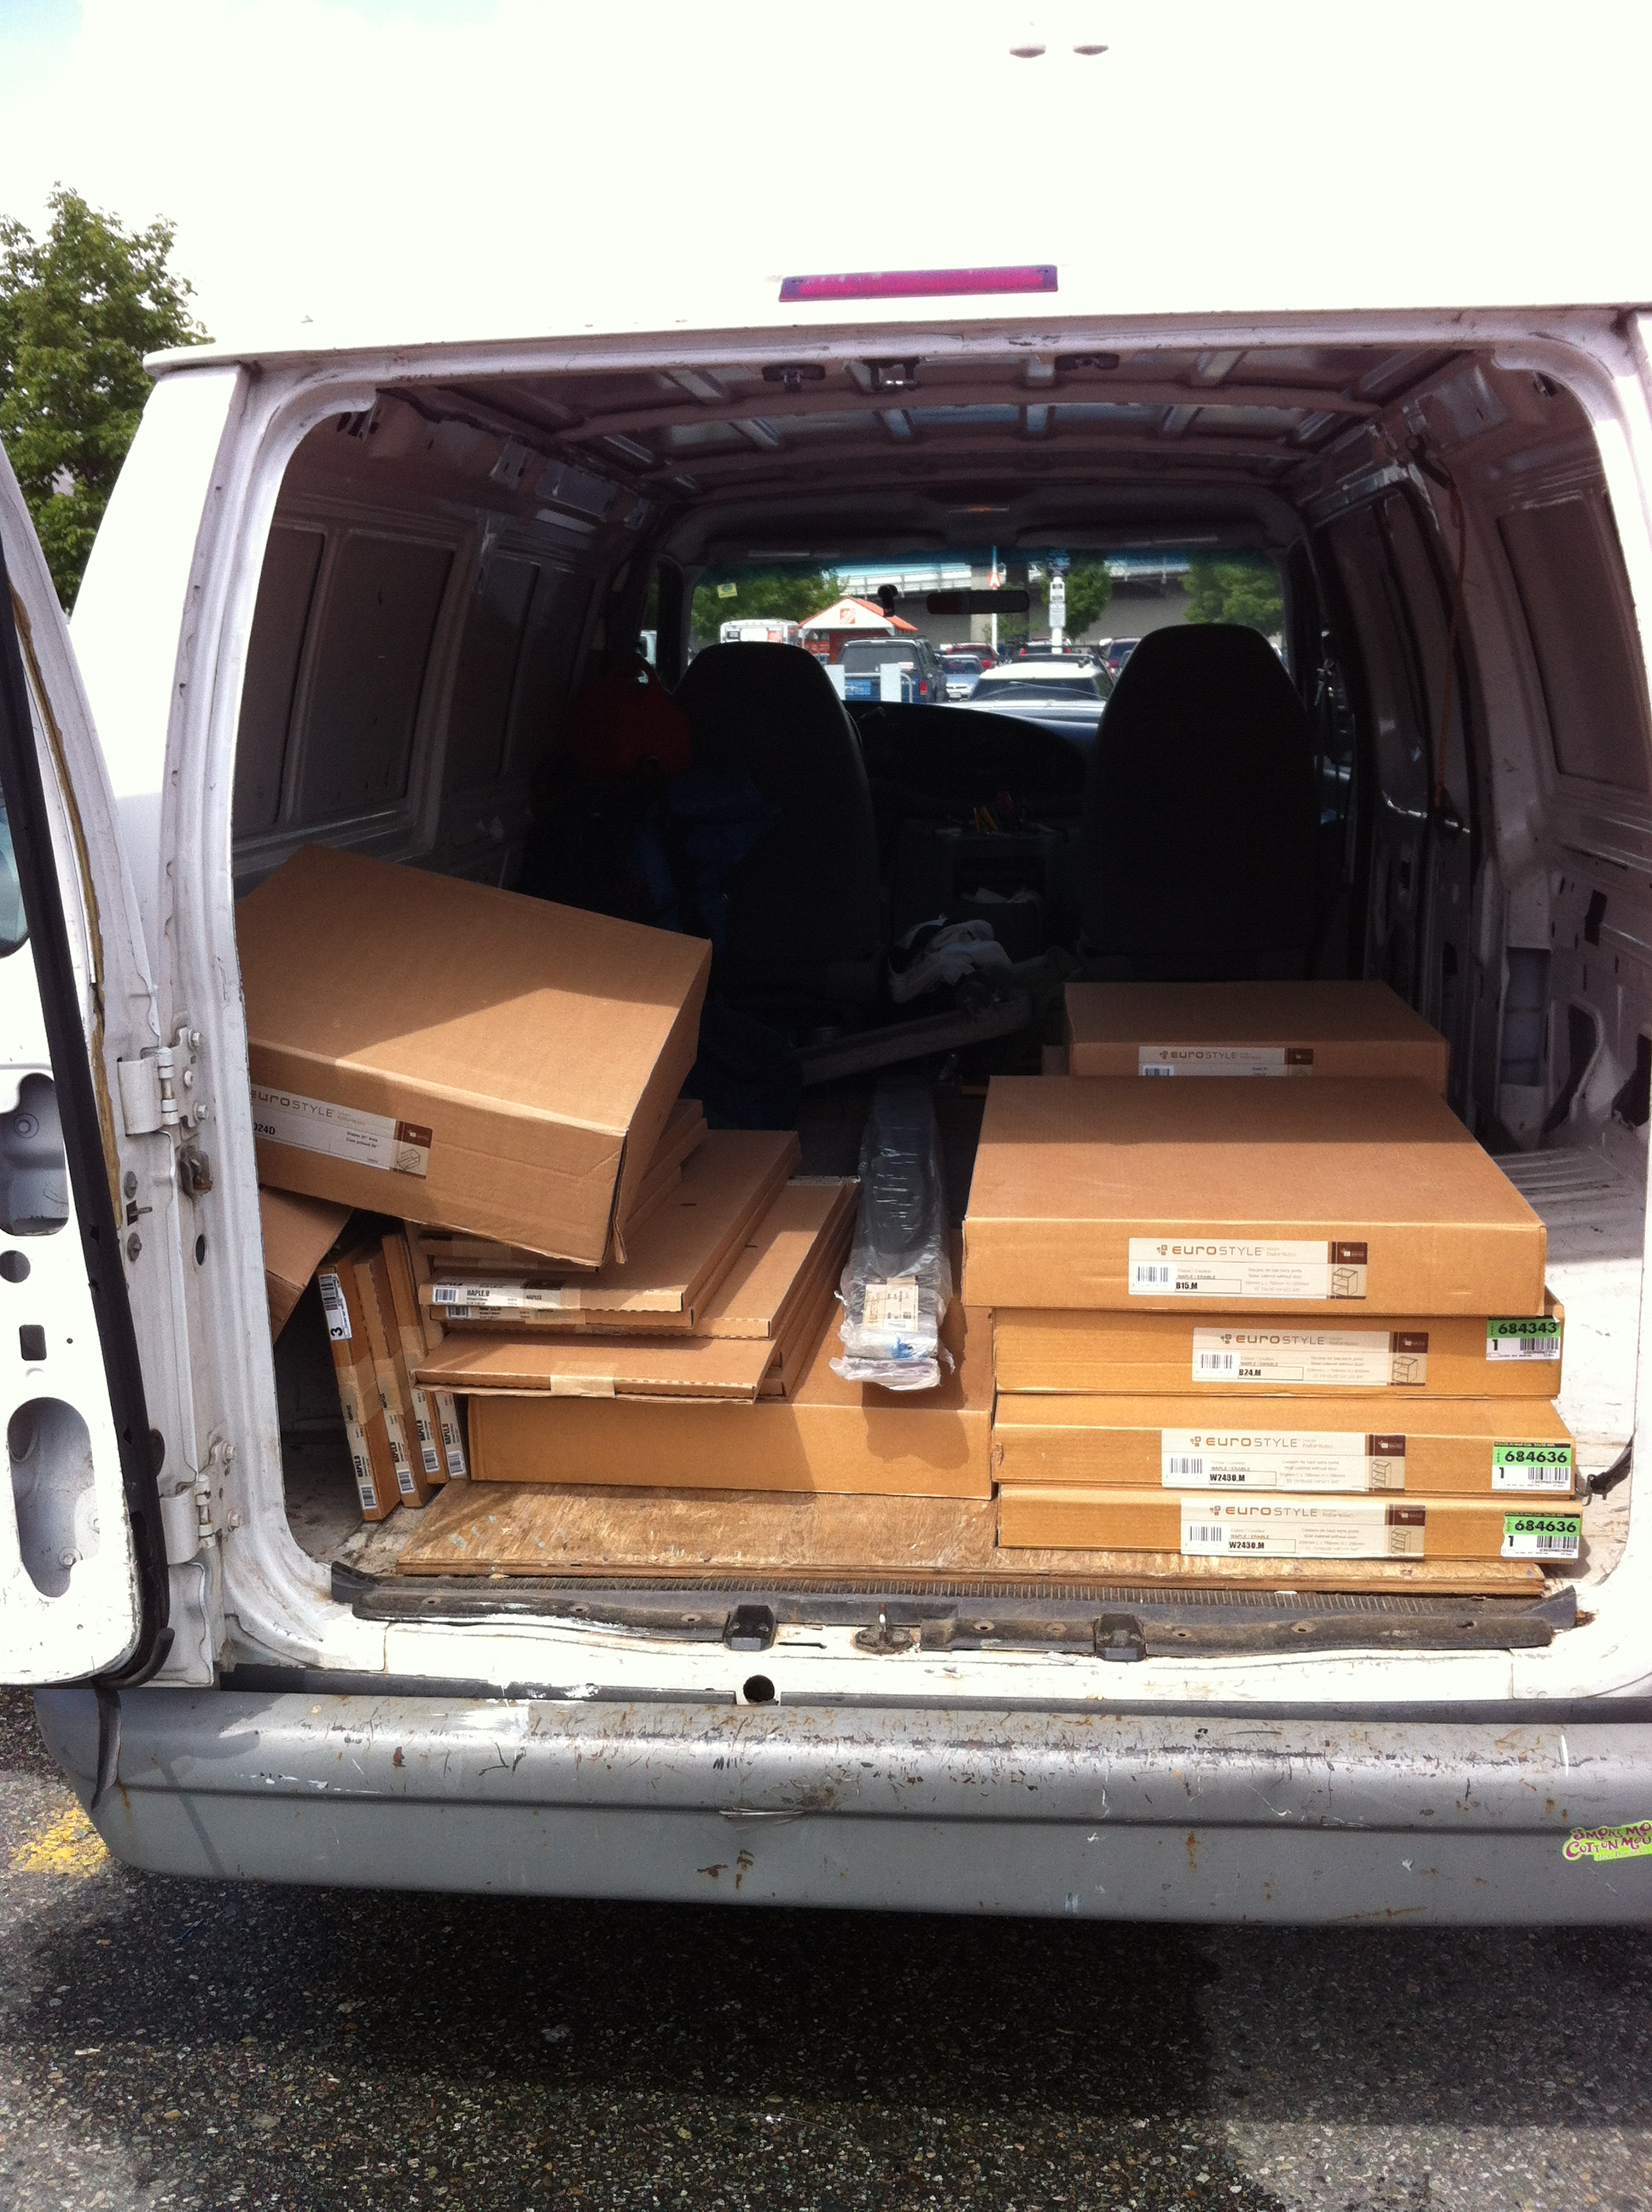 Clean cargo van for smaller moves or deliveries Vancouver